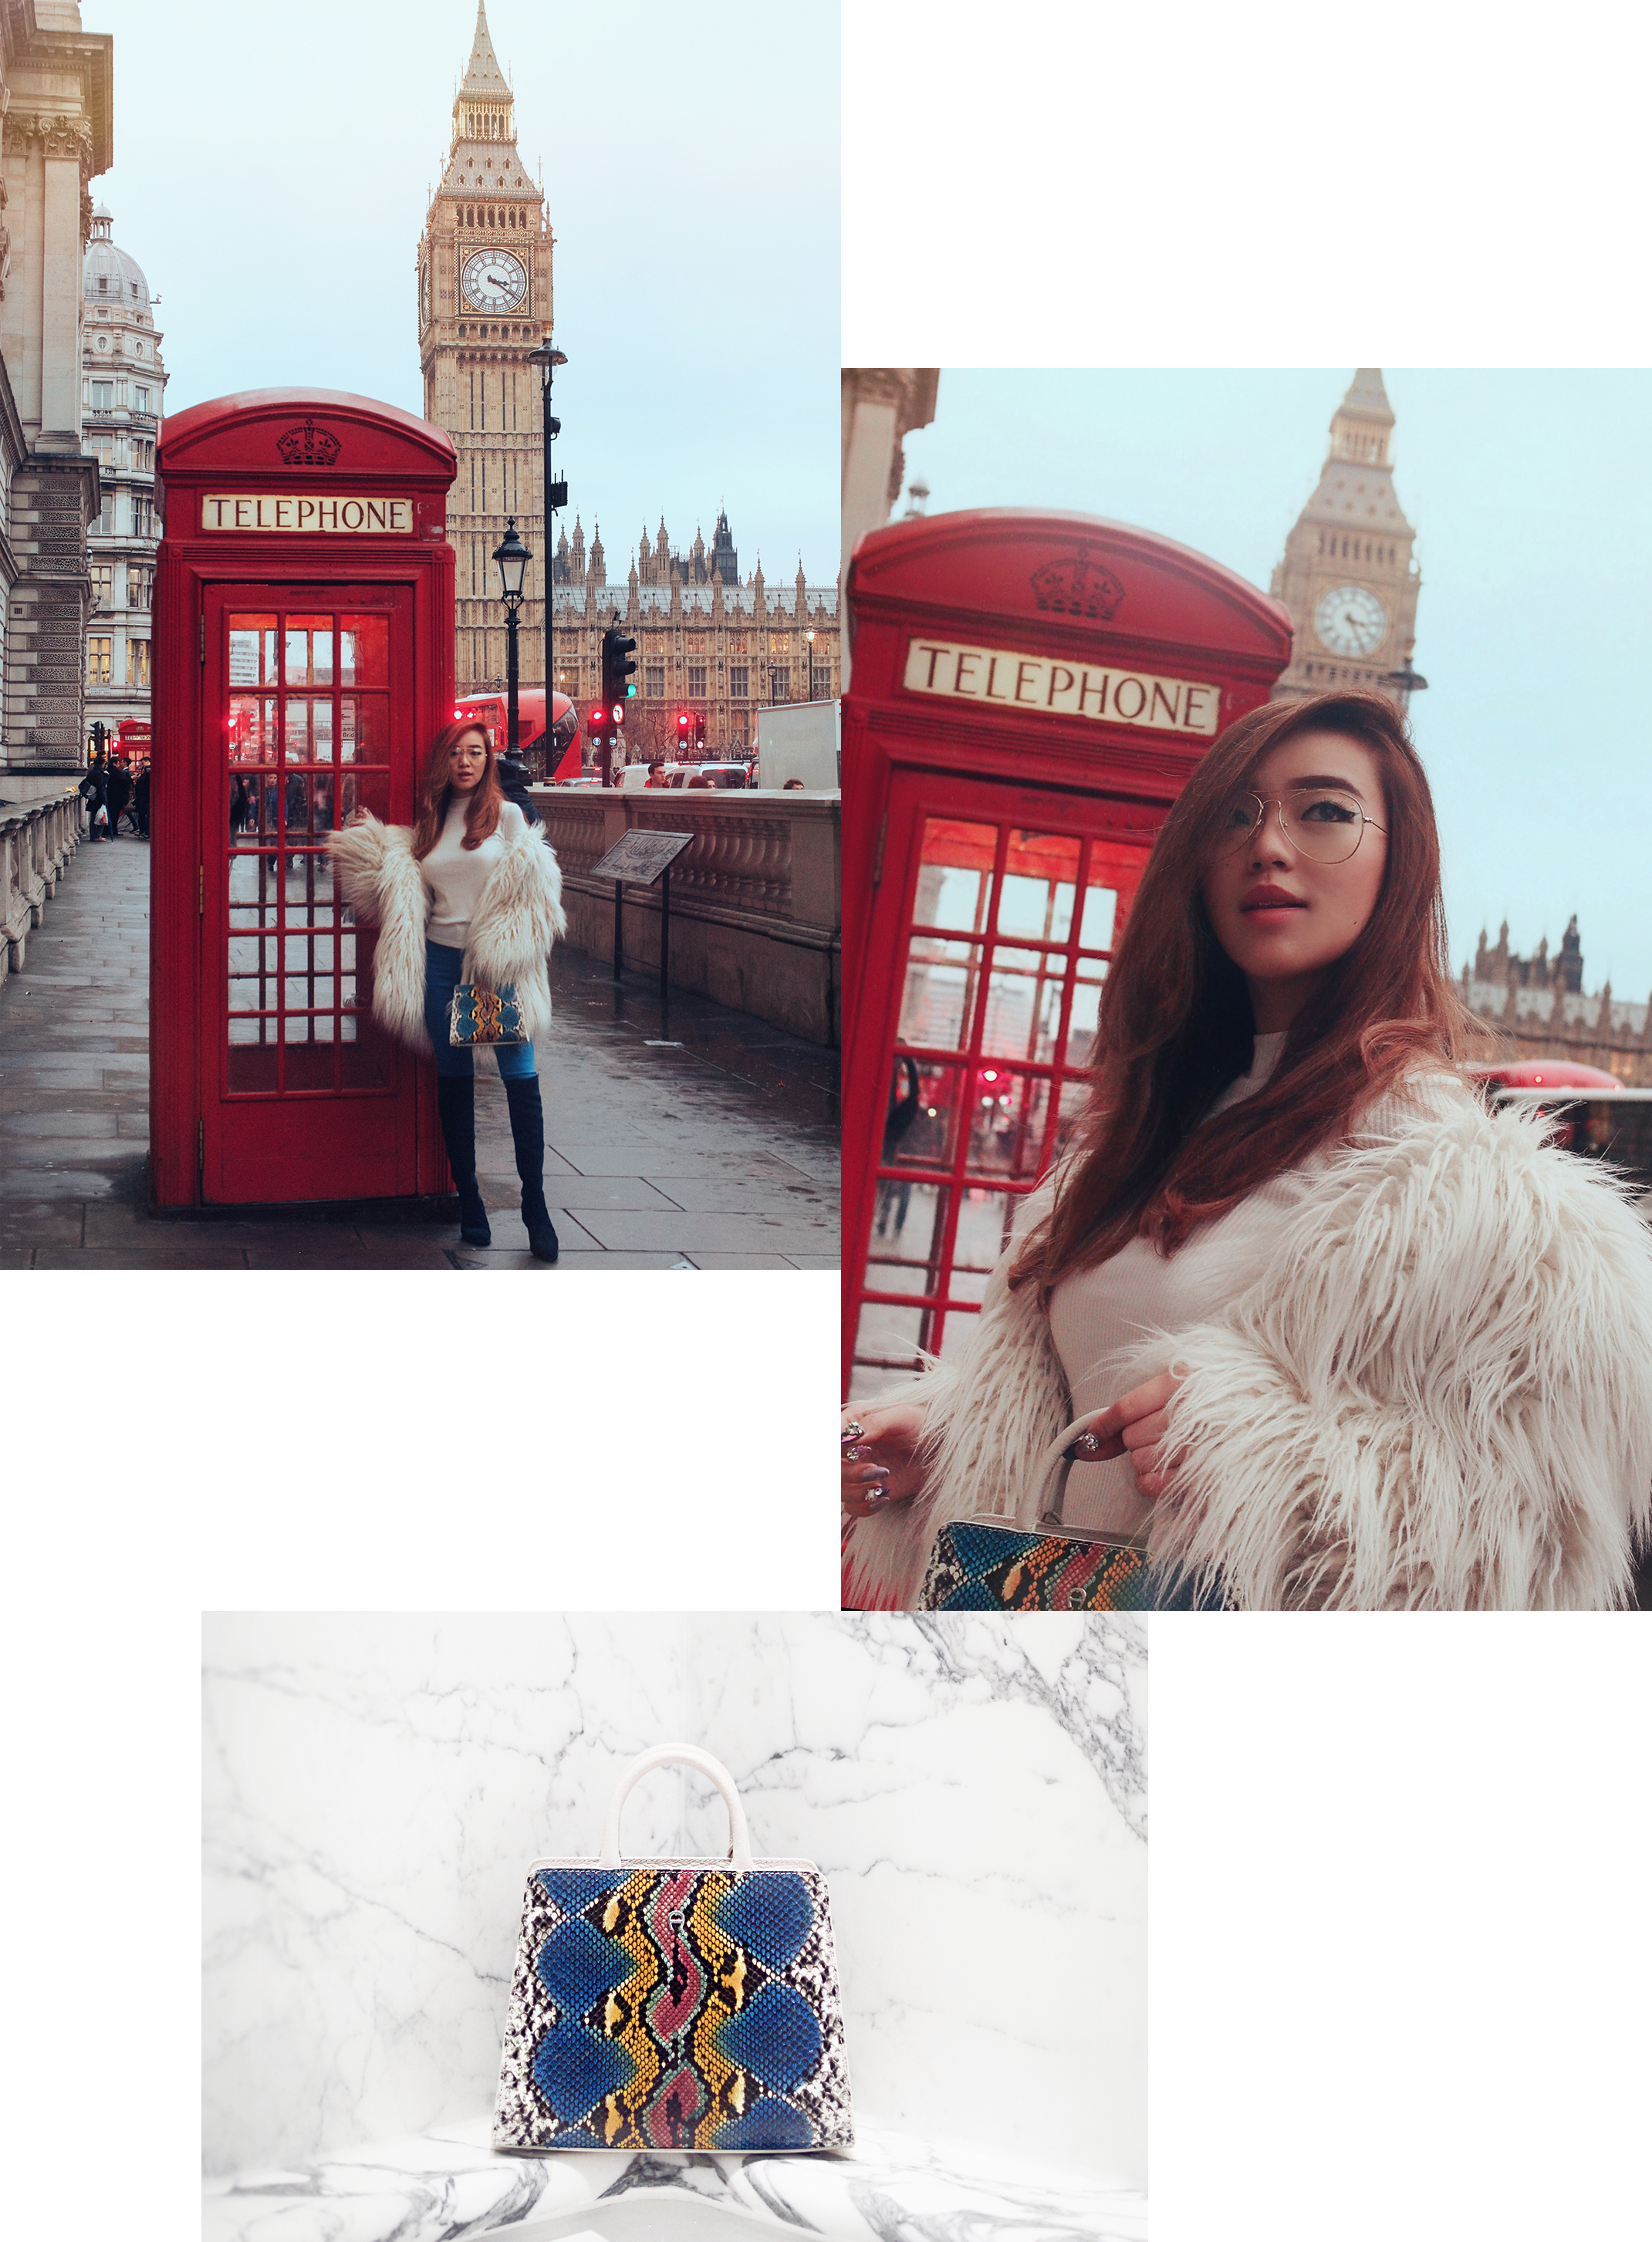 willabelle-ong-paledivision-street-style-fashion-travel-lifestyle-blog-australia-singapore-blogger-london-aigner-munich-cybill-mini-bag-python-exotic-skin